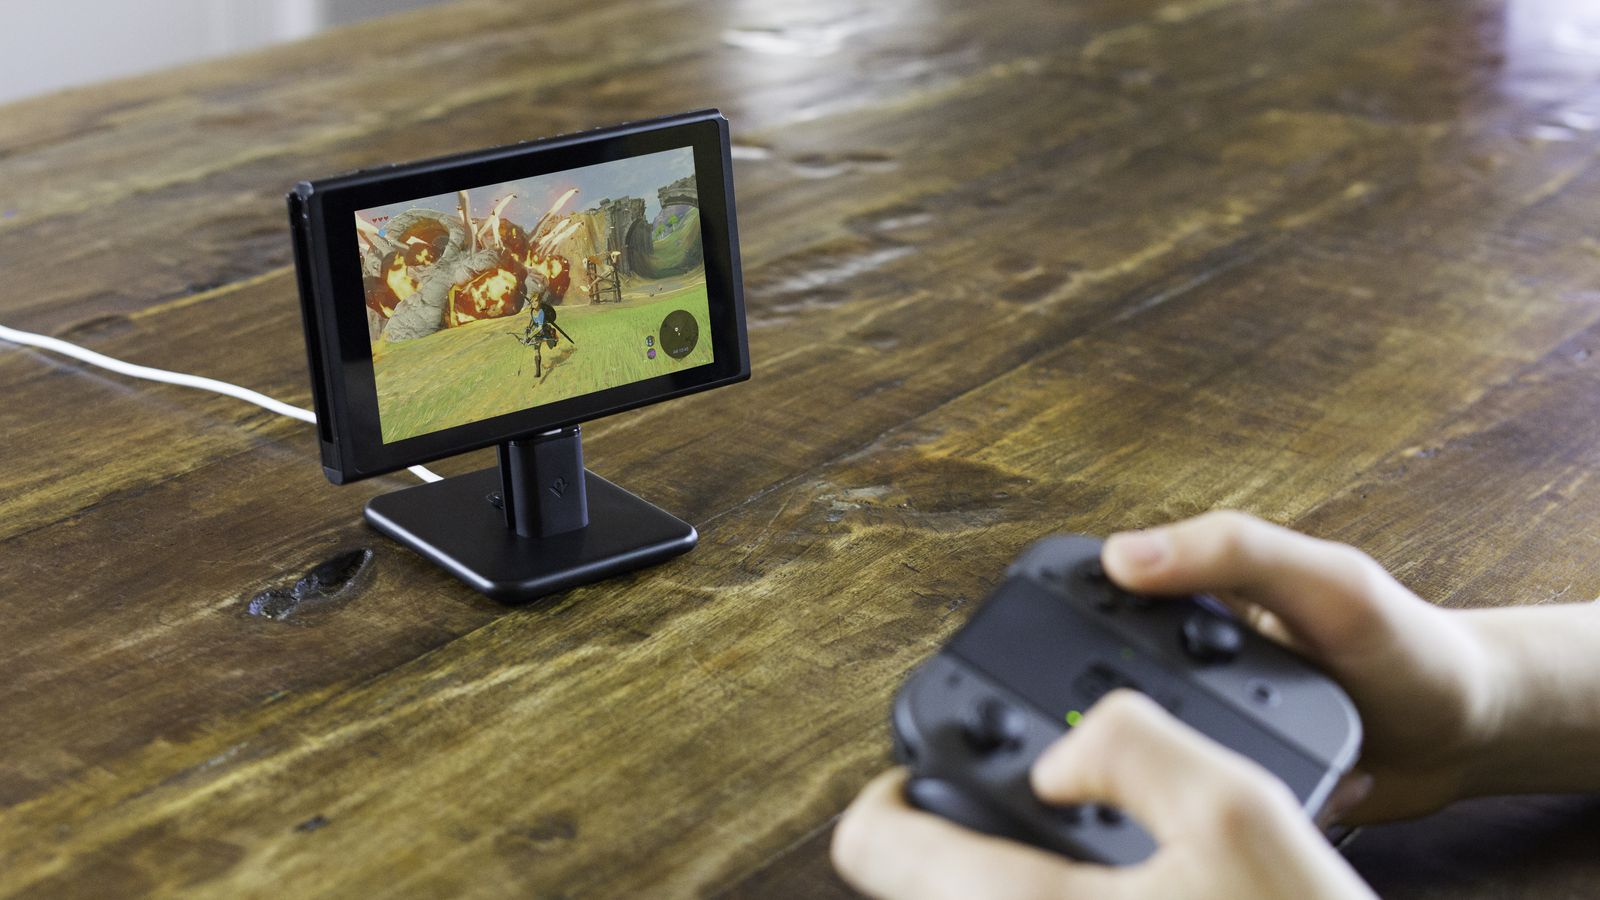 The Best Nintendo Switch Stand yet is an Expensive iPhone Dock